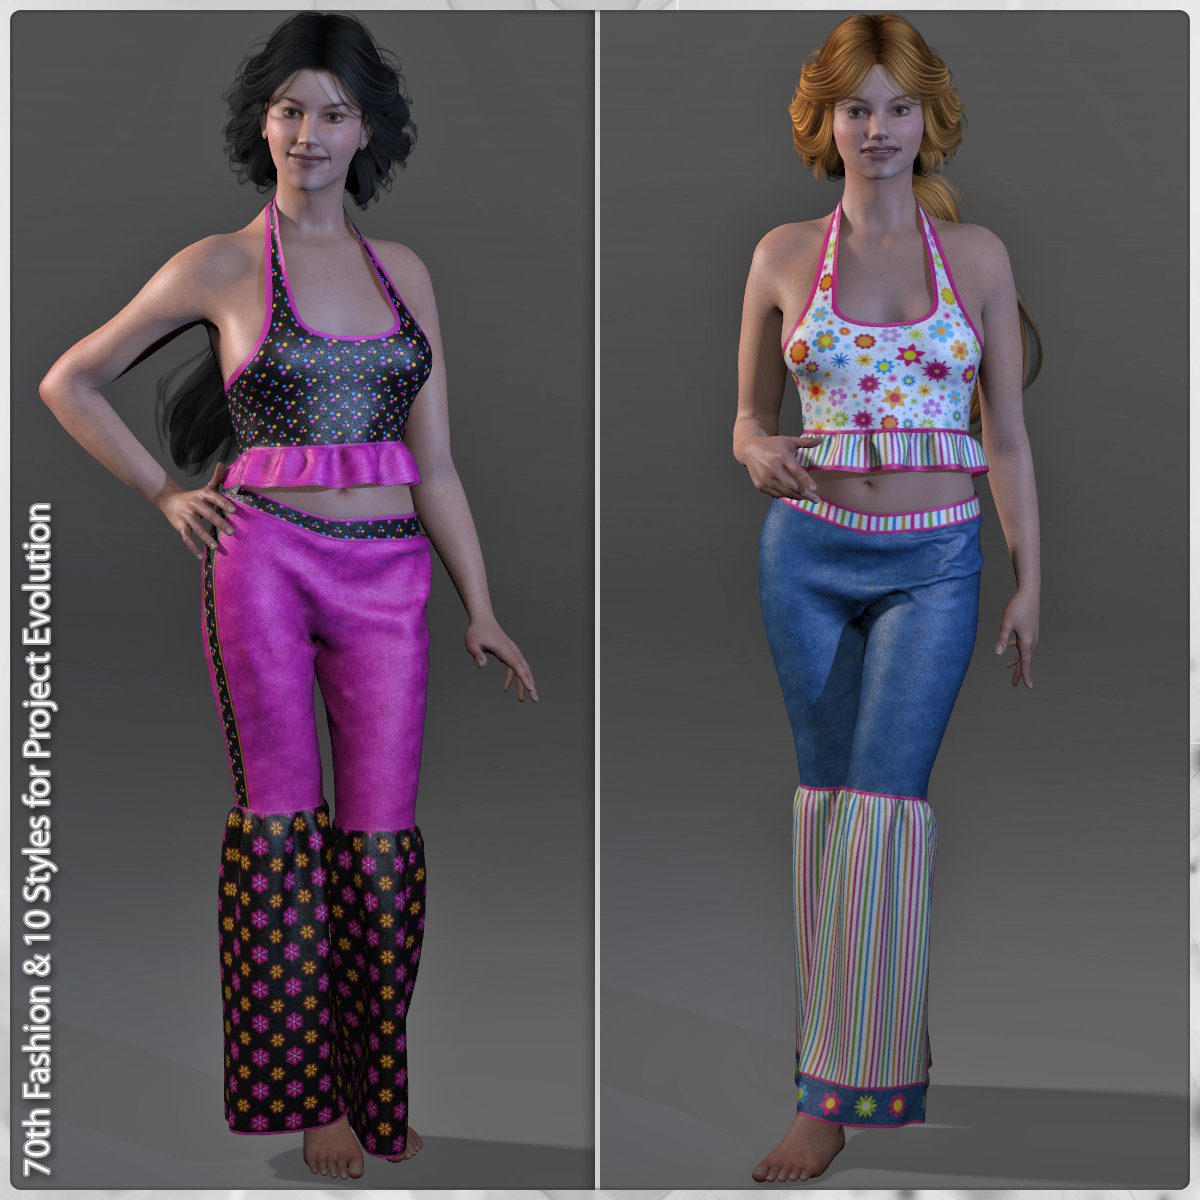 70th Fashion and 10 Styles for Project Evolution